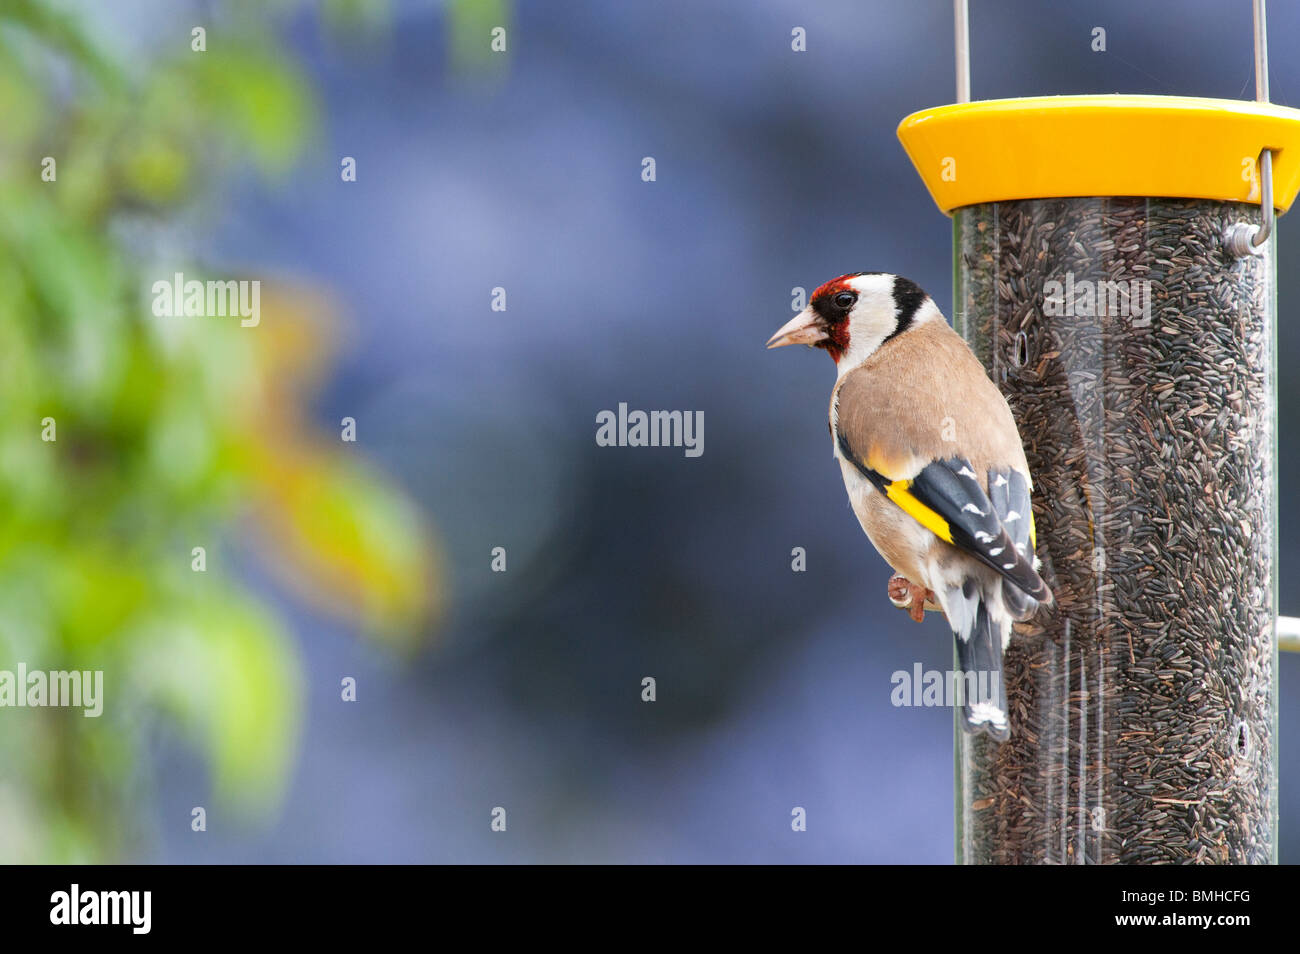 Goldfinch on a nyjer bird seed feeder in a garden - Stock Image